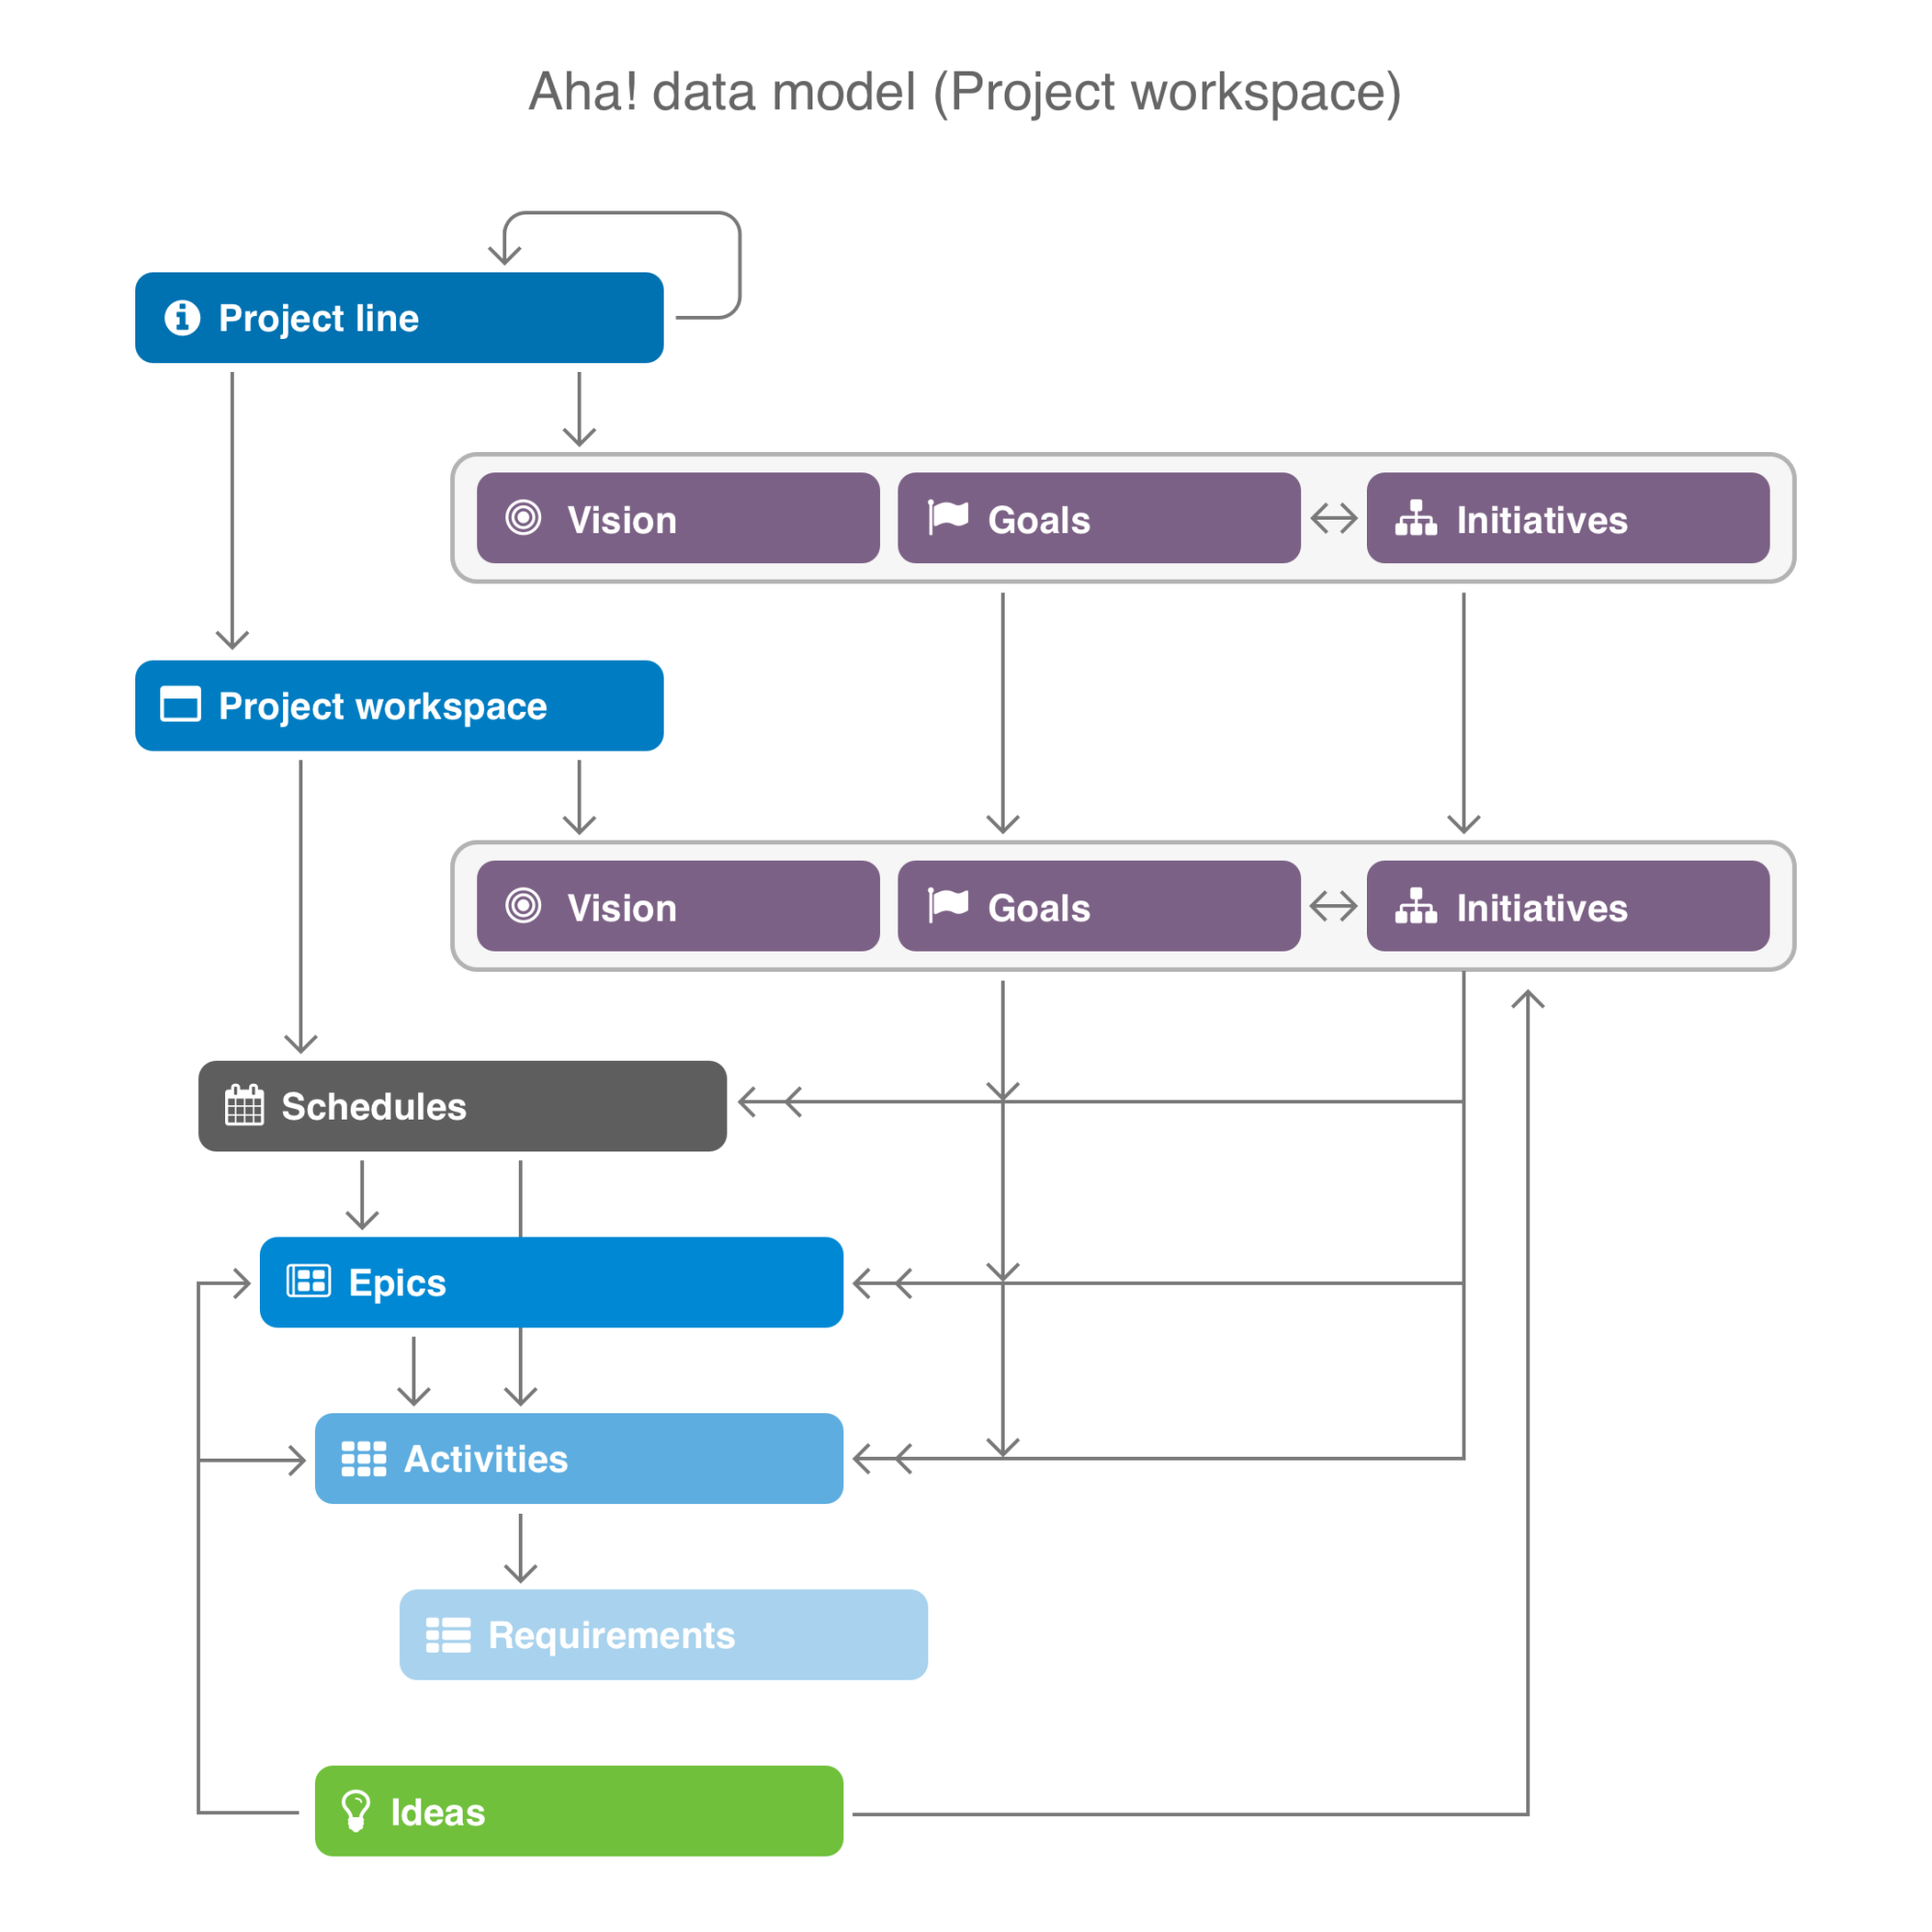 Support - Explore a project workspace in your account - inline image (data model)